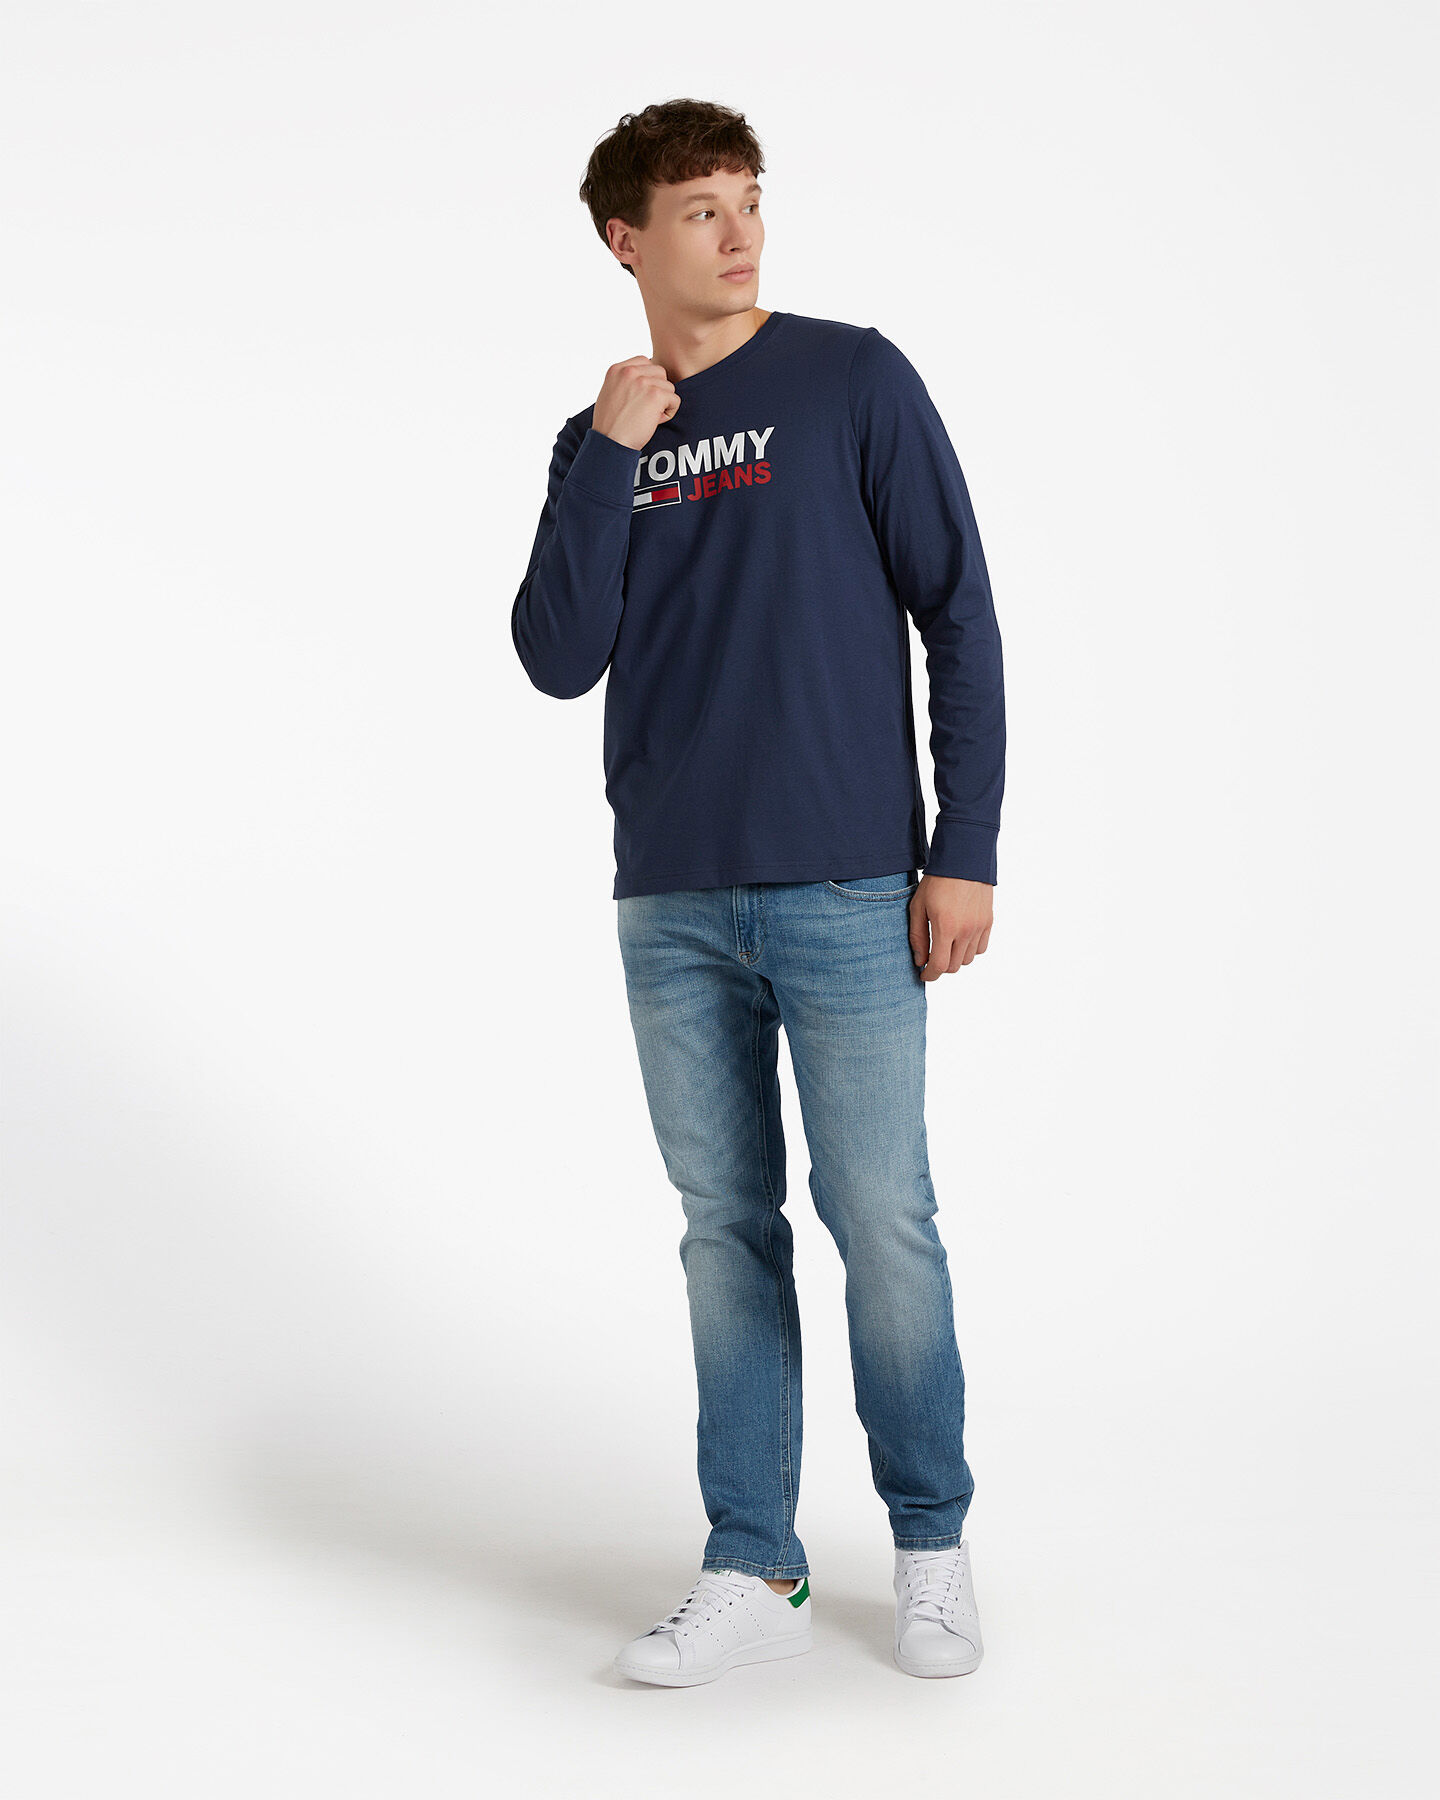 T-Shirt TOMMY HILFIGER LOGO M S4083707 scatto 1